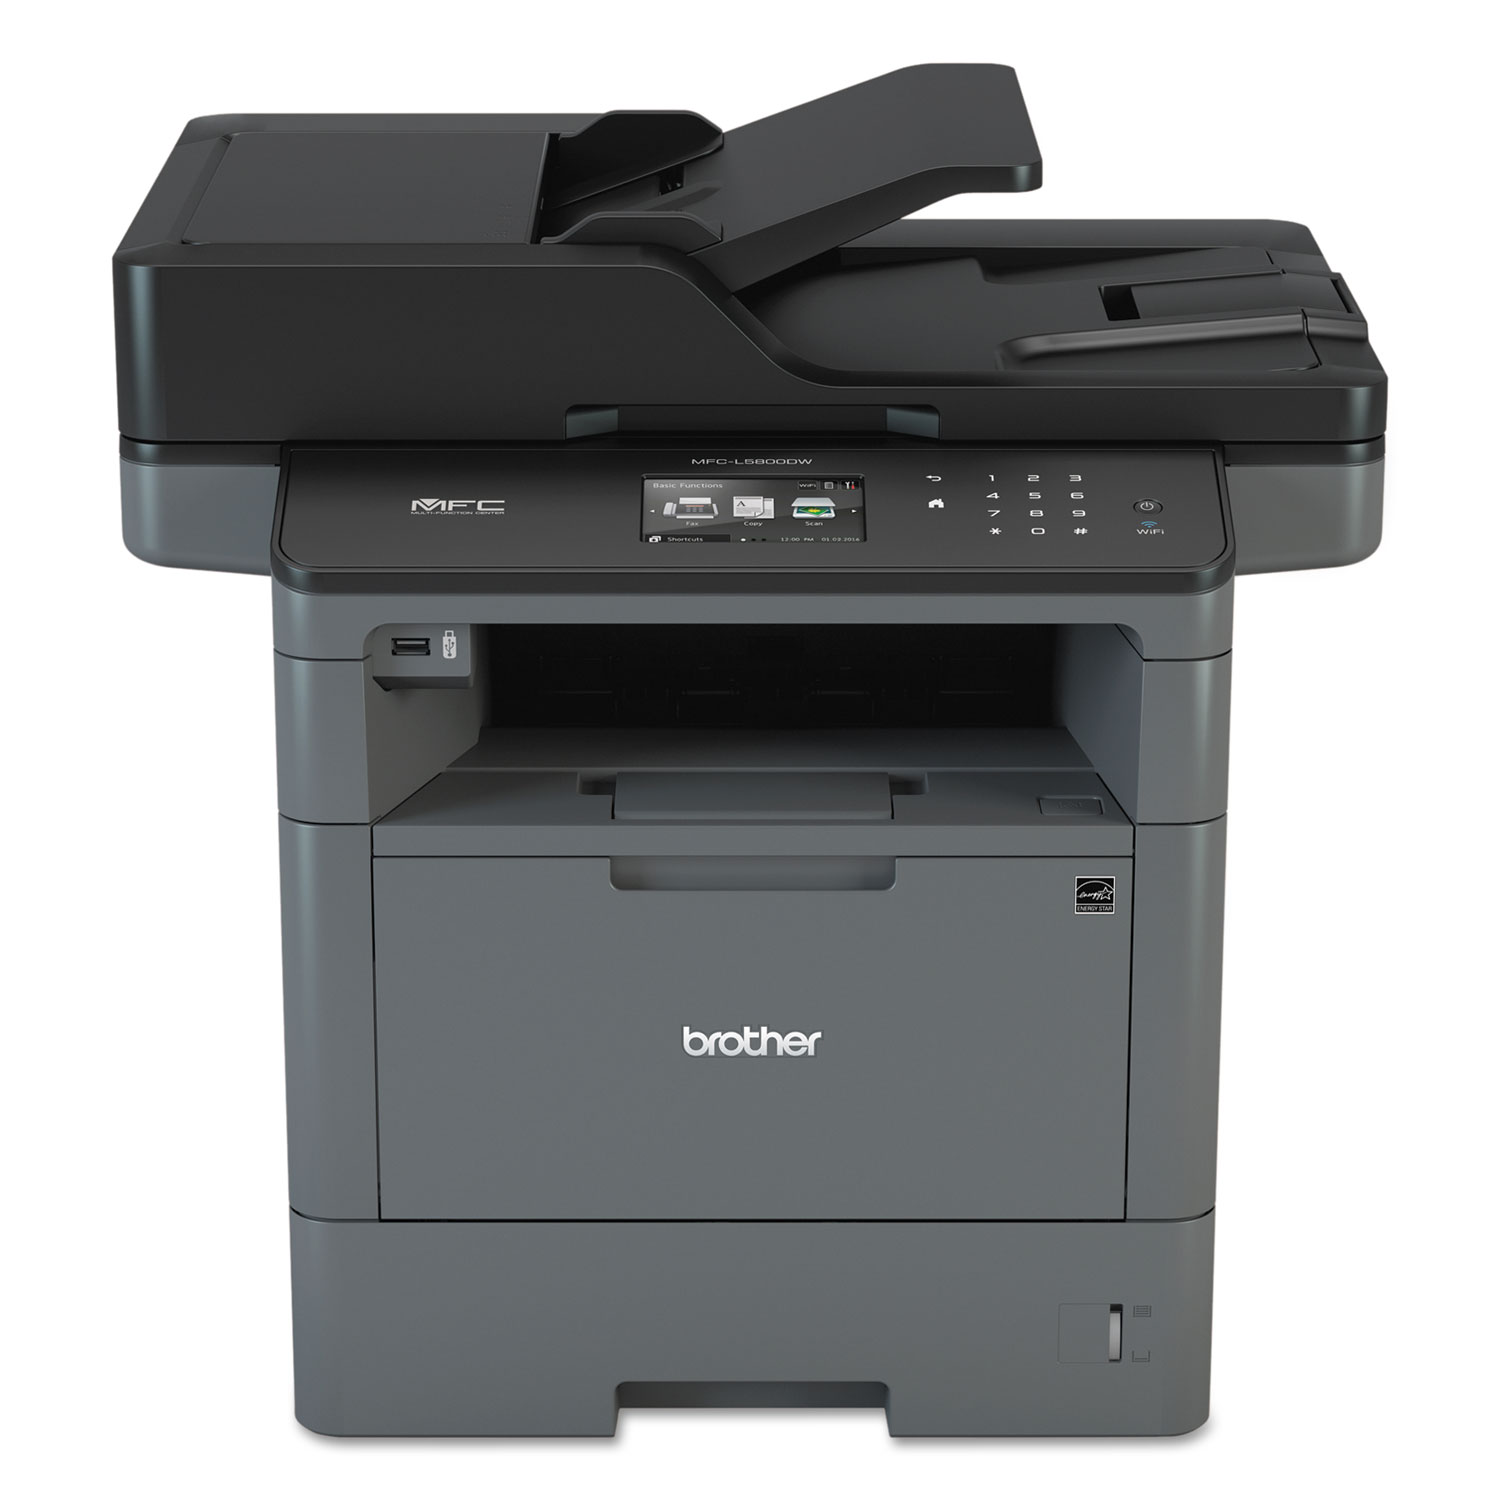 MFC-L5800DW Wireless Monochrome All-in-One Laser Printer, Copy/Fax/Print/Scan